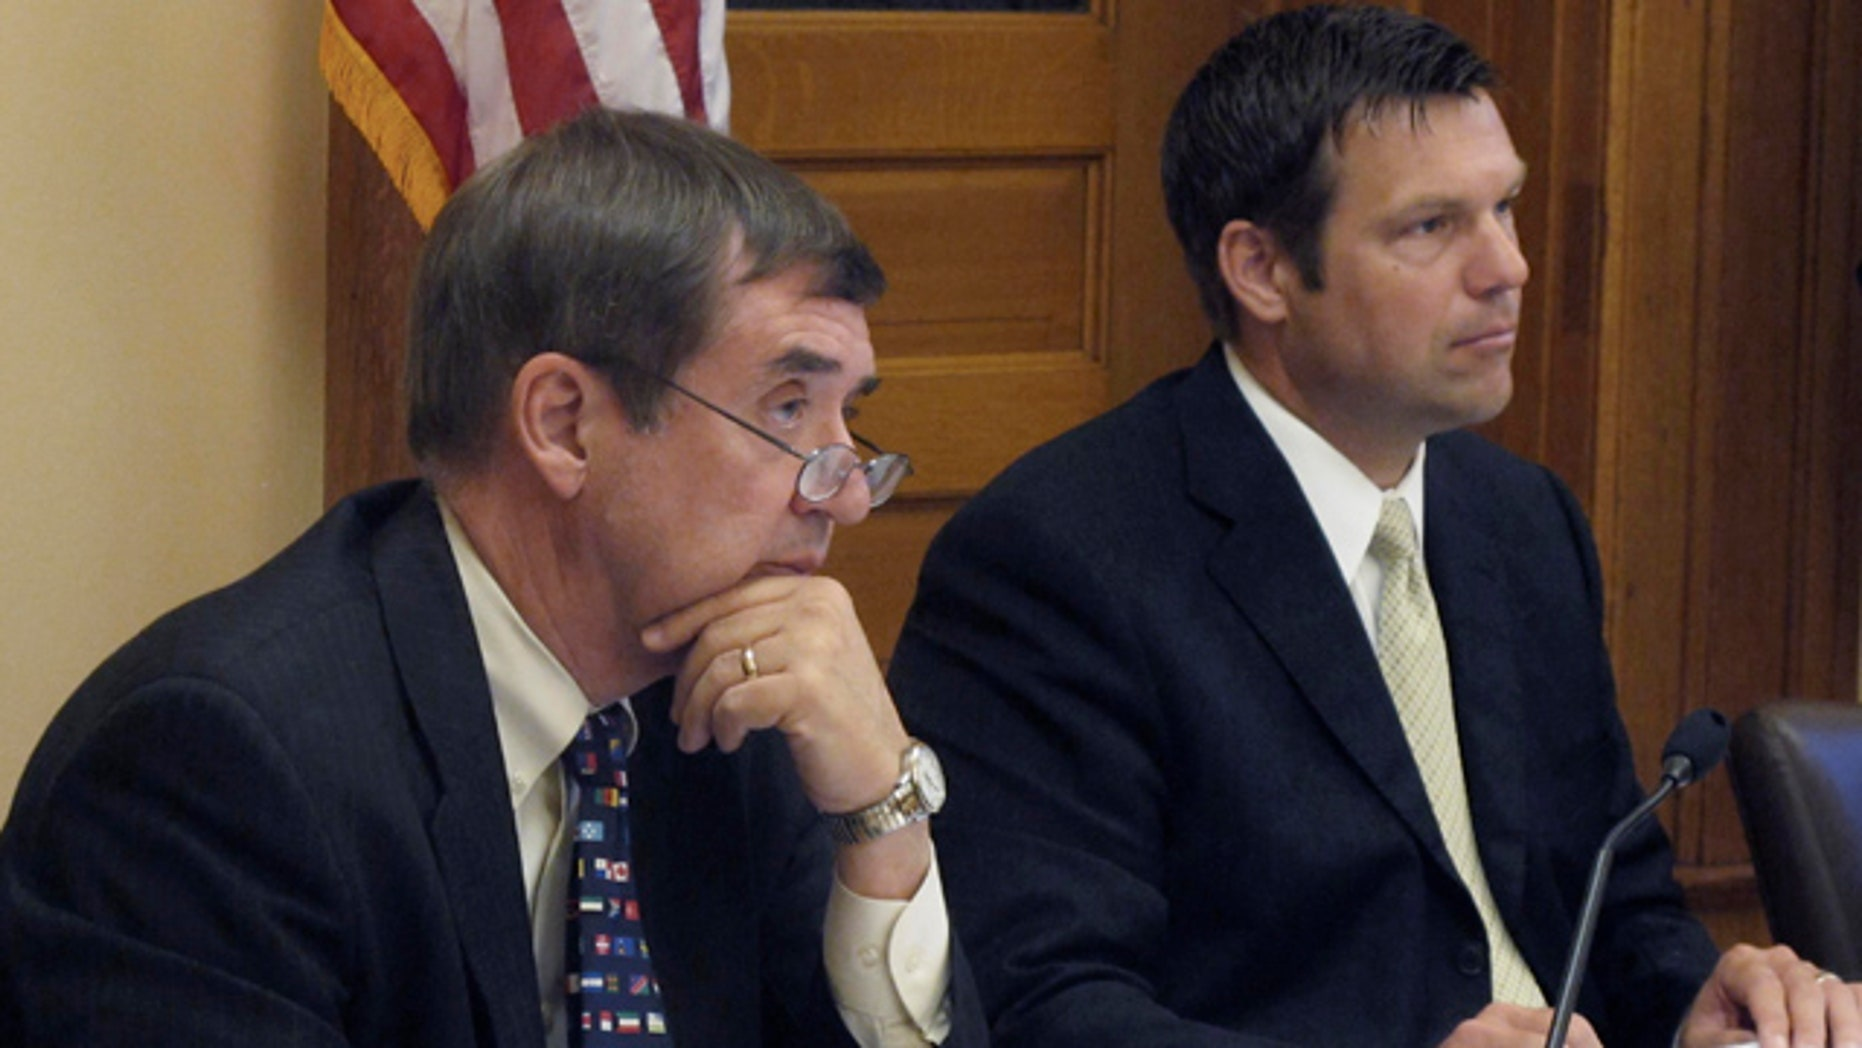 June 30: Kansas Secretary of Administration Dennis Taylor, left, and Secretary of State Kris Kobach, right, listen to a presentation on new regulations for abortion clinics at the Statehouse in Topeka, Kan.